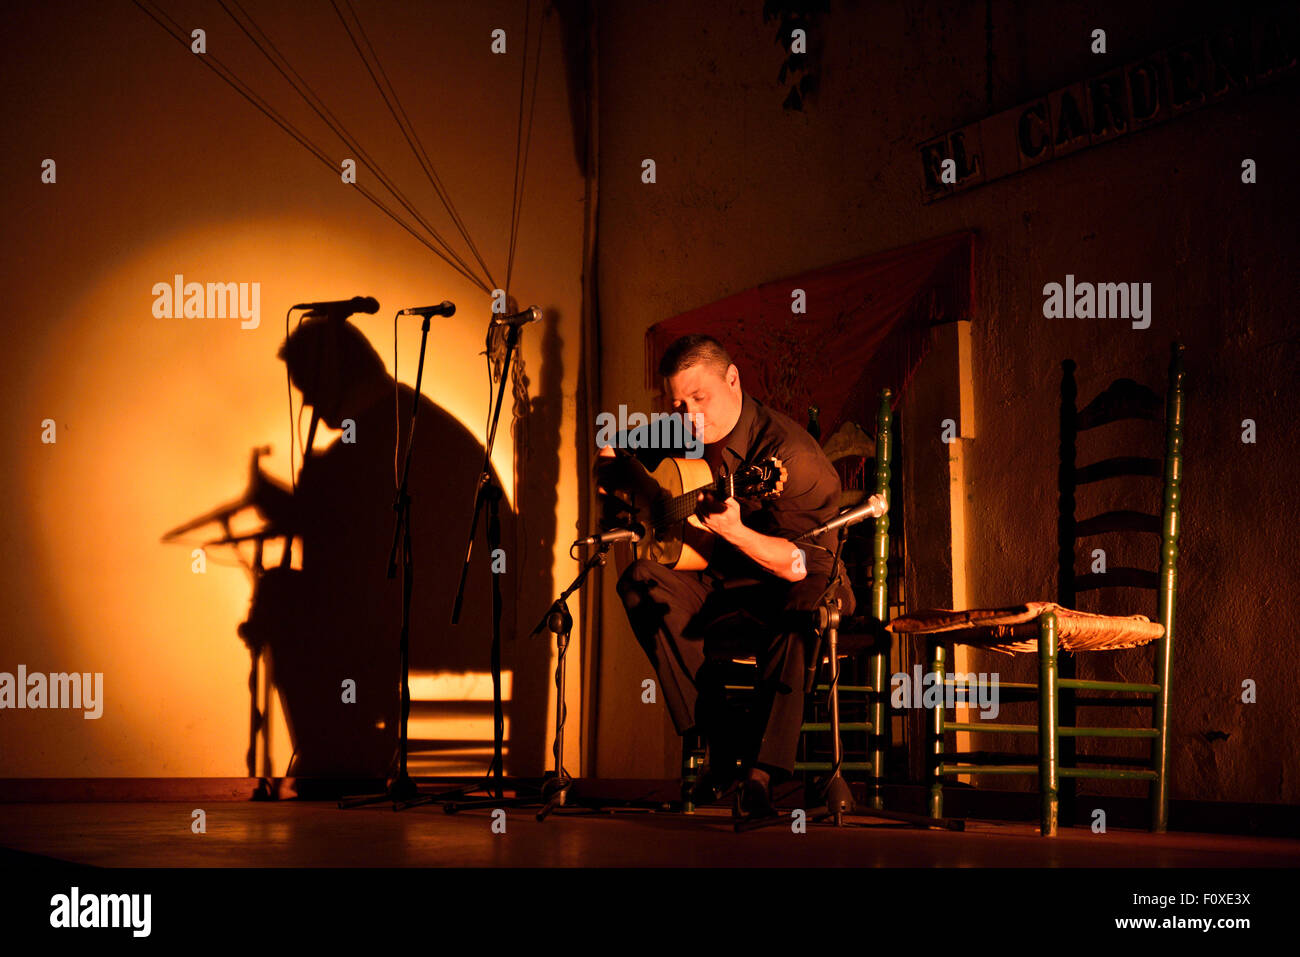 Solo Flamenco guitarist in spotlight on stage at night in Cordoba Spain - Stock Image